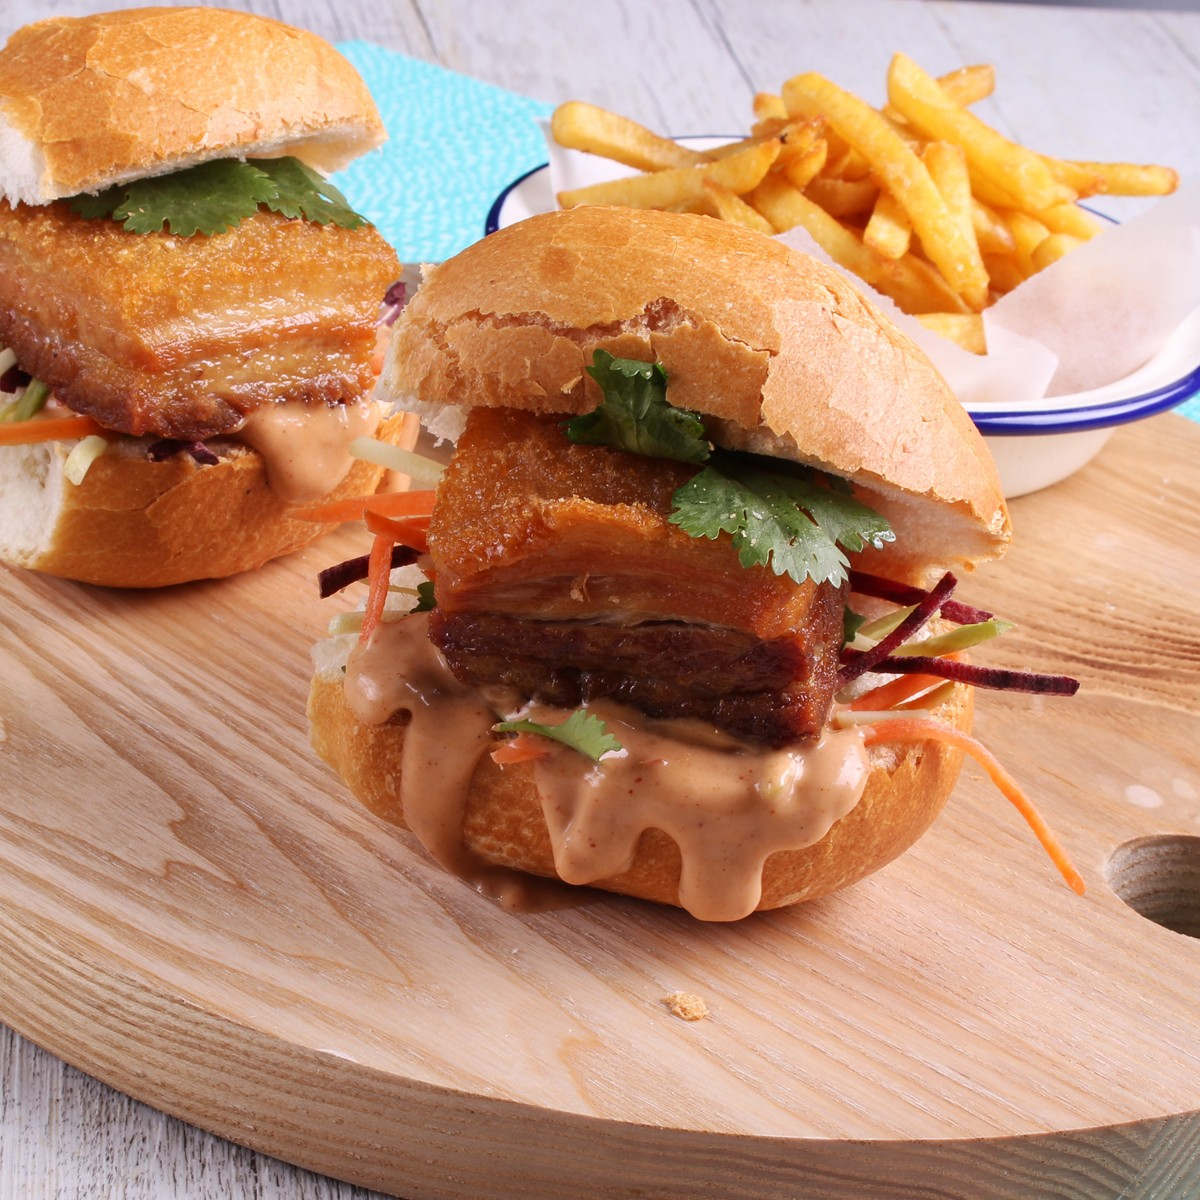 Asian Pork Belly Sliders - Three Aussie Farmers Slow Cooked Pork Belly